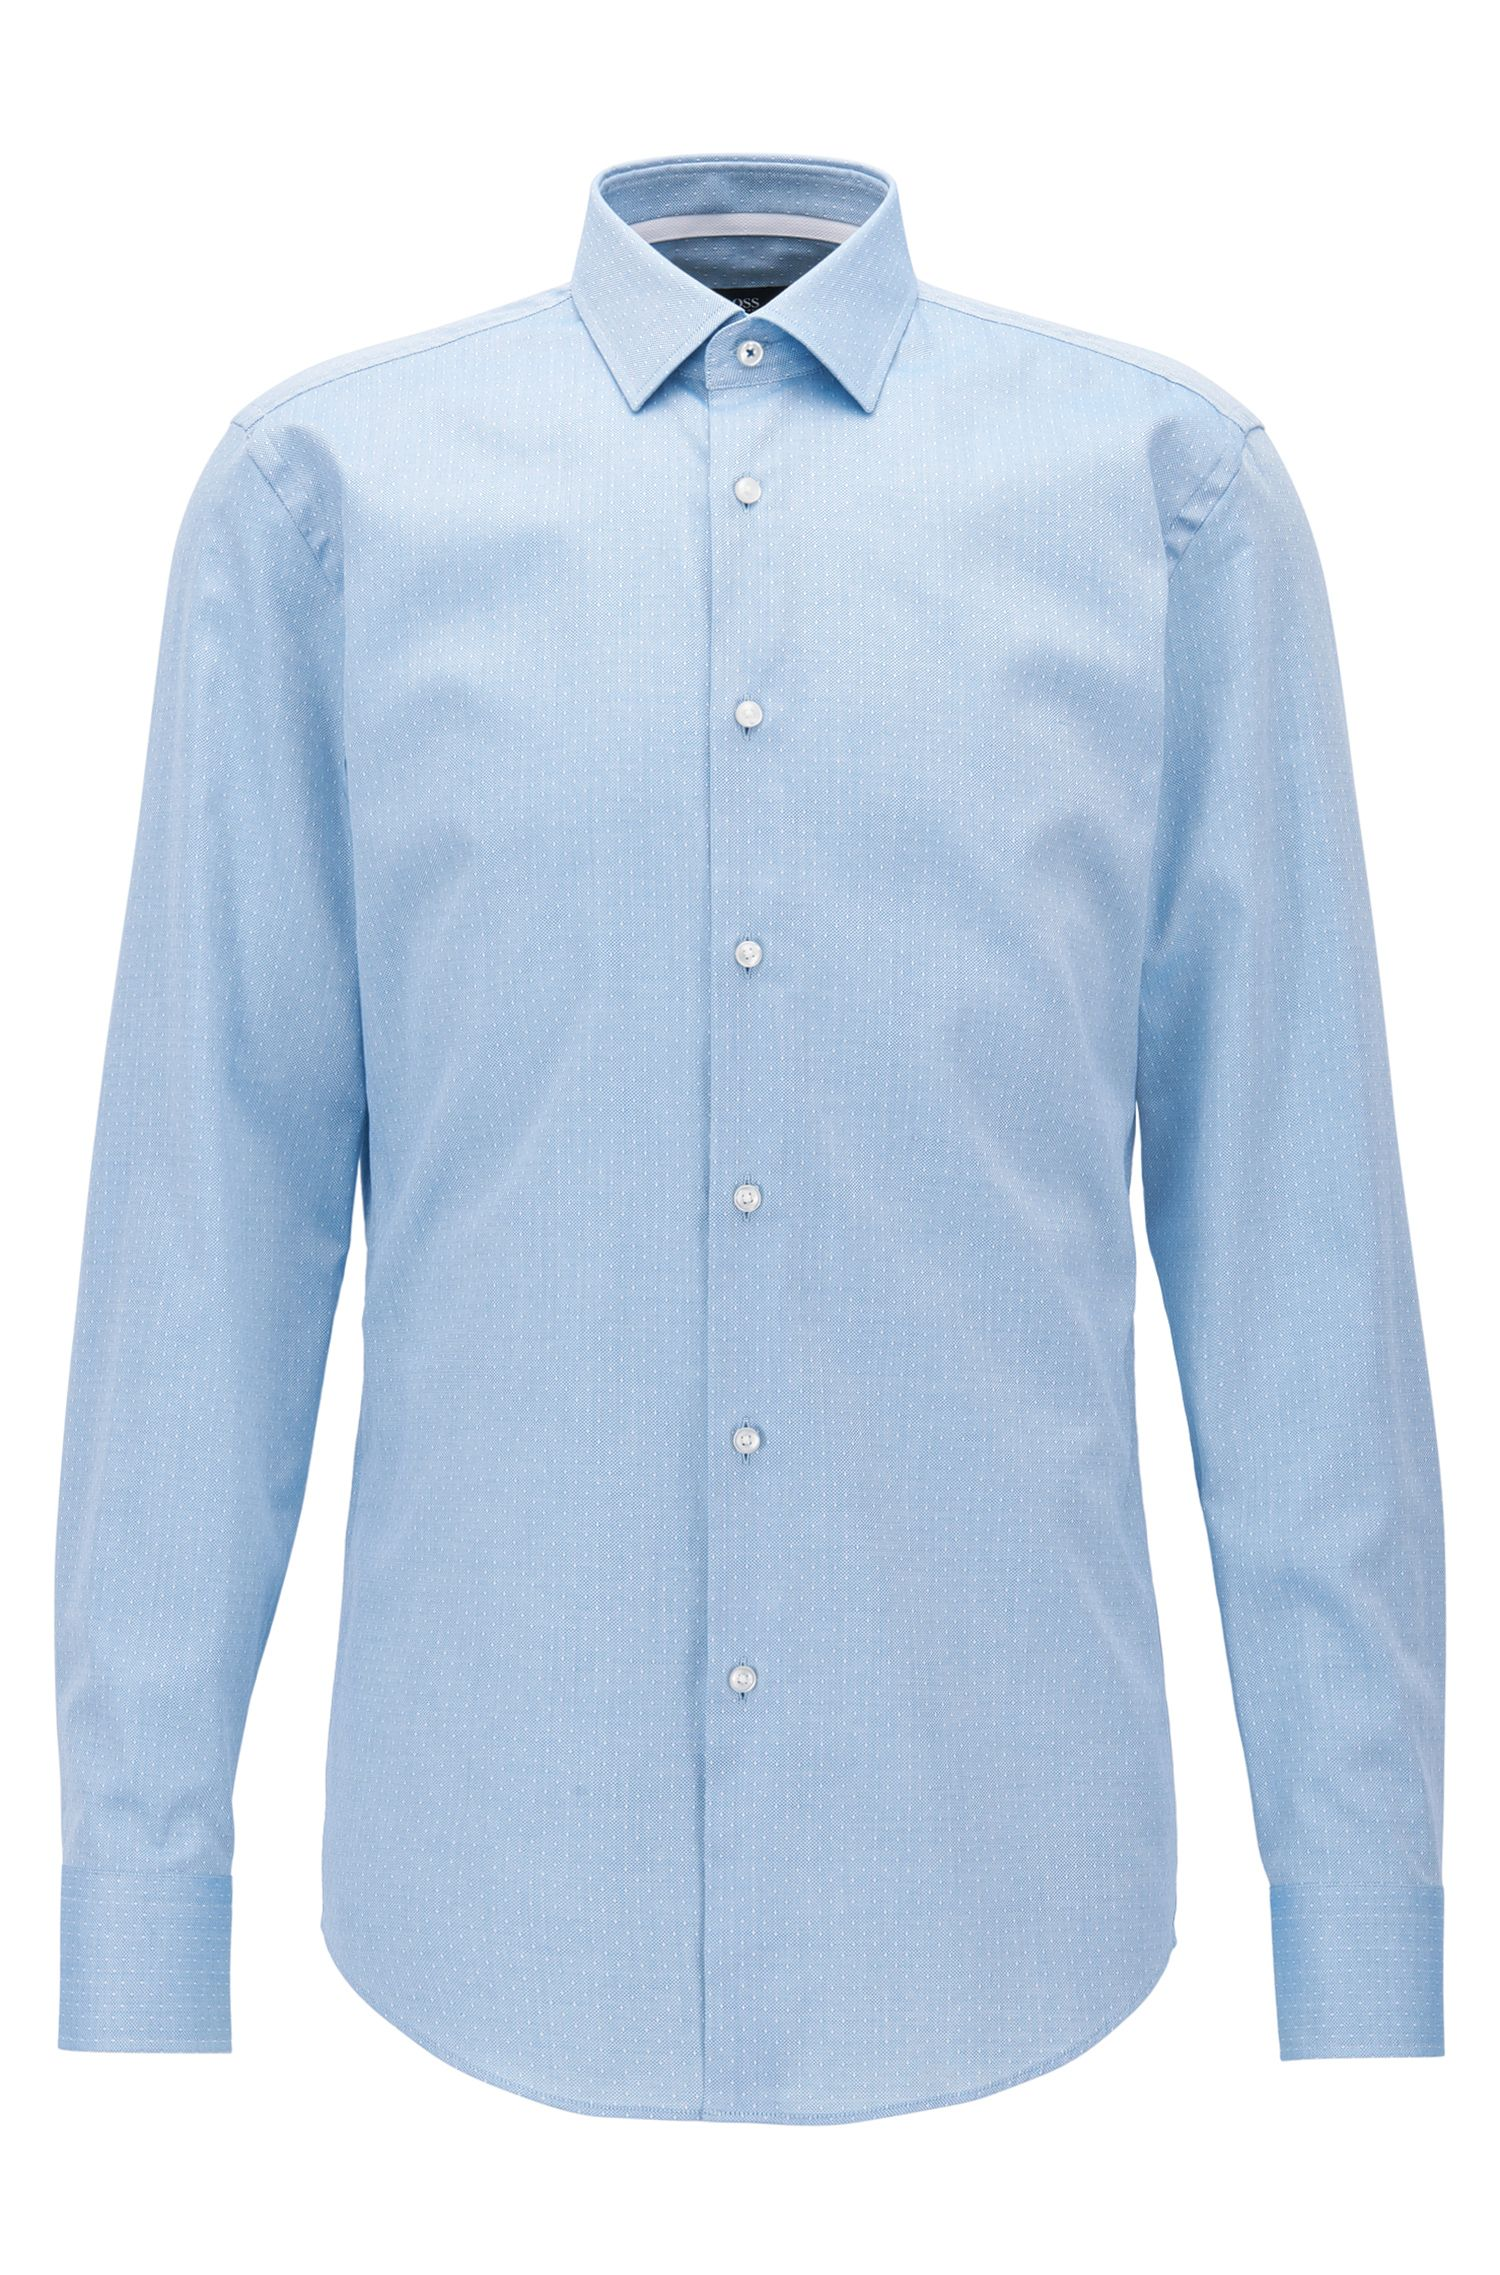 Regular-fit shirt in Italian-made dobby cotton